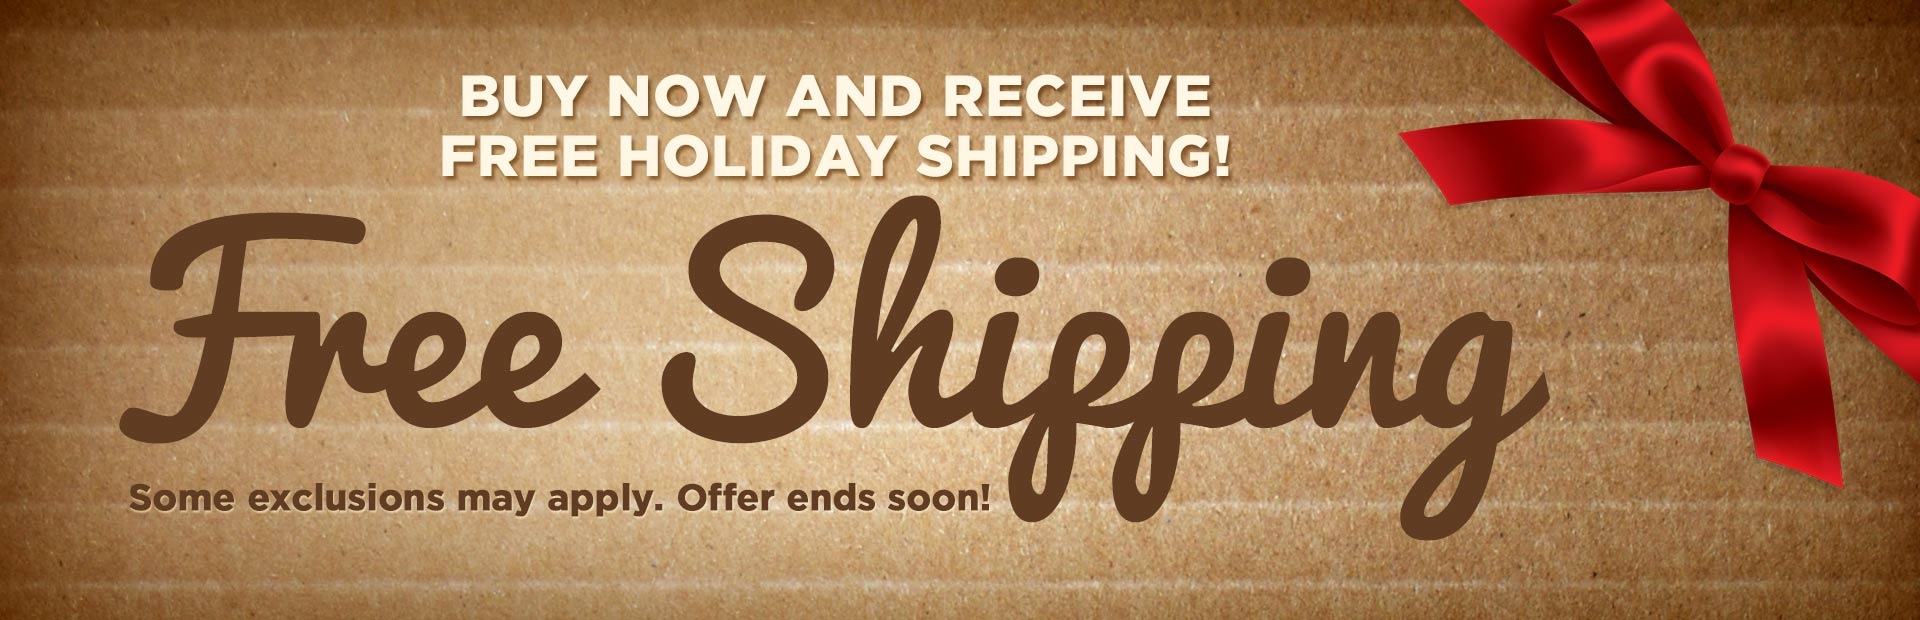 Buy now and receive free holiday shipping! Click here to shop online.